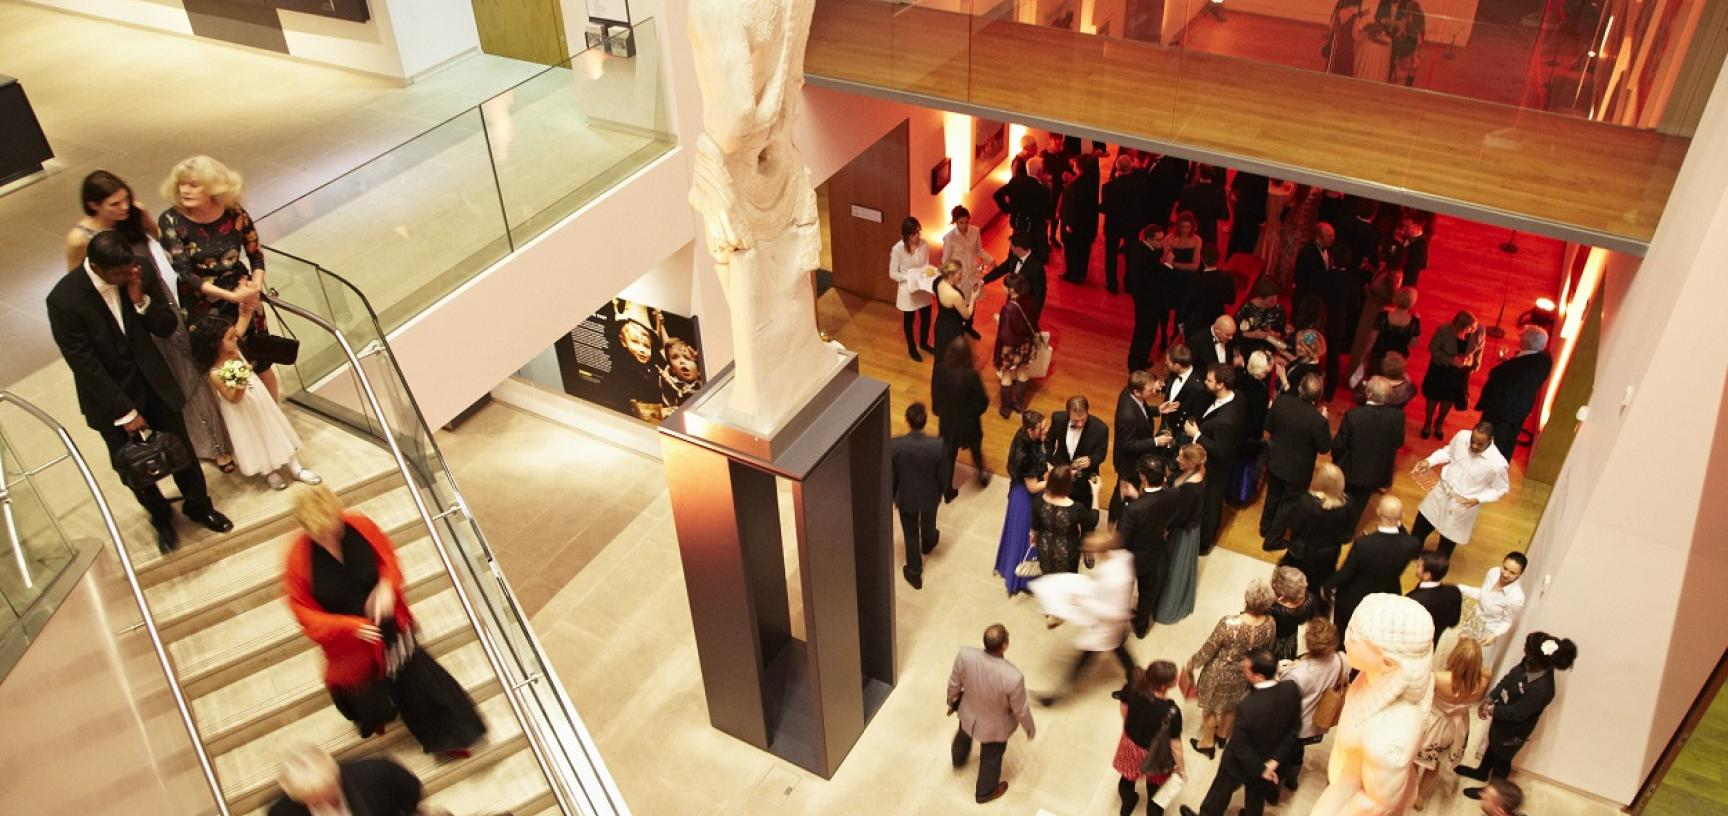 Corporate entertaining in the Ashmolean's Atrium foyer